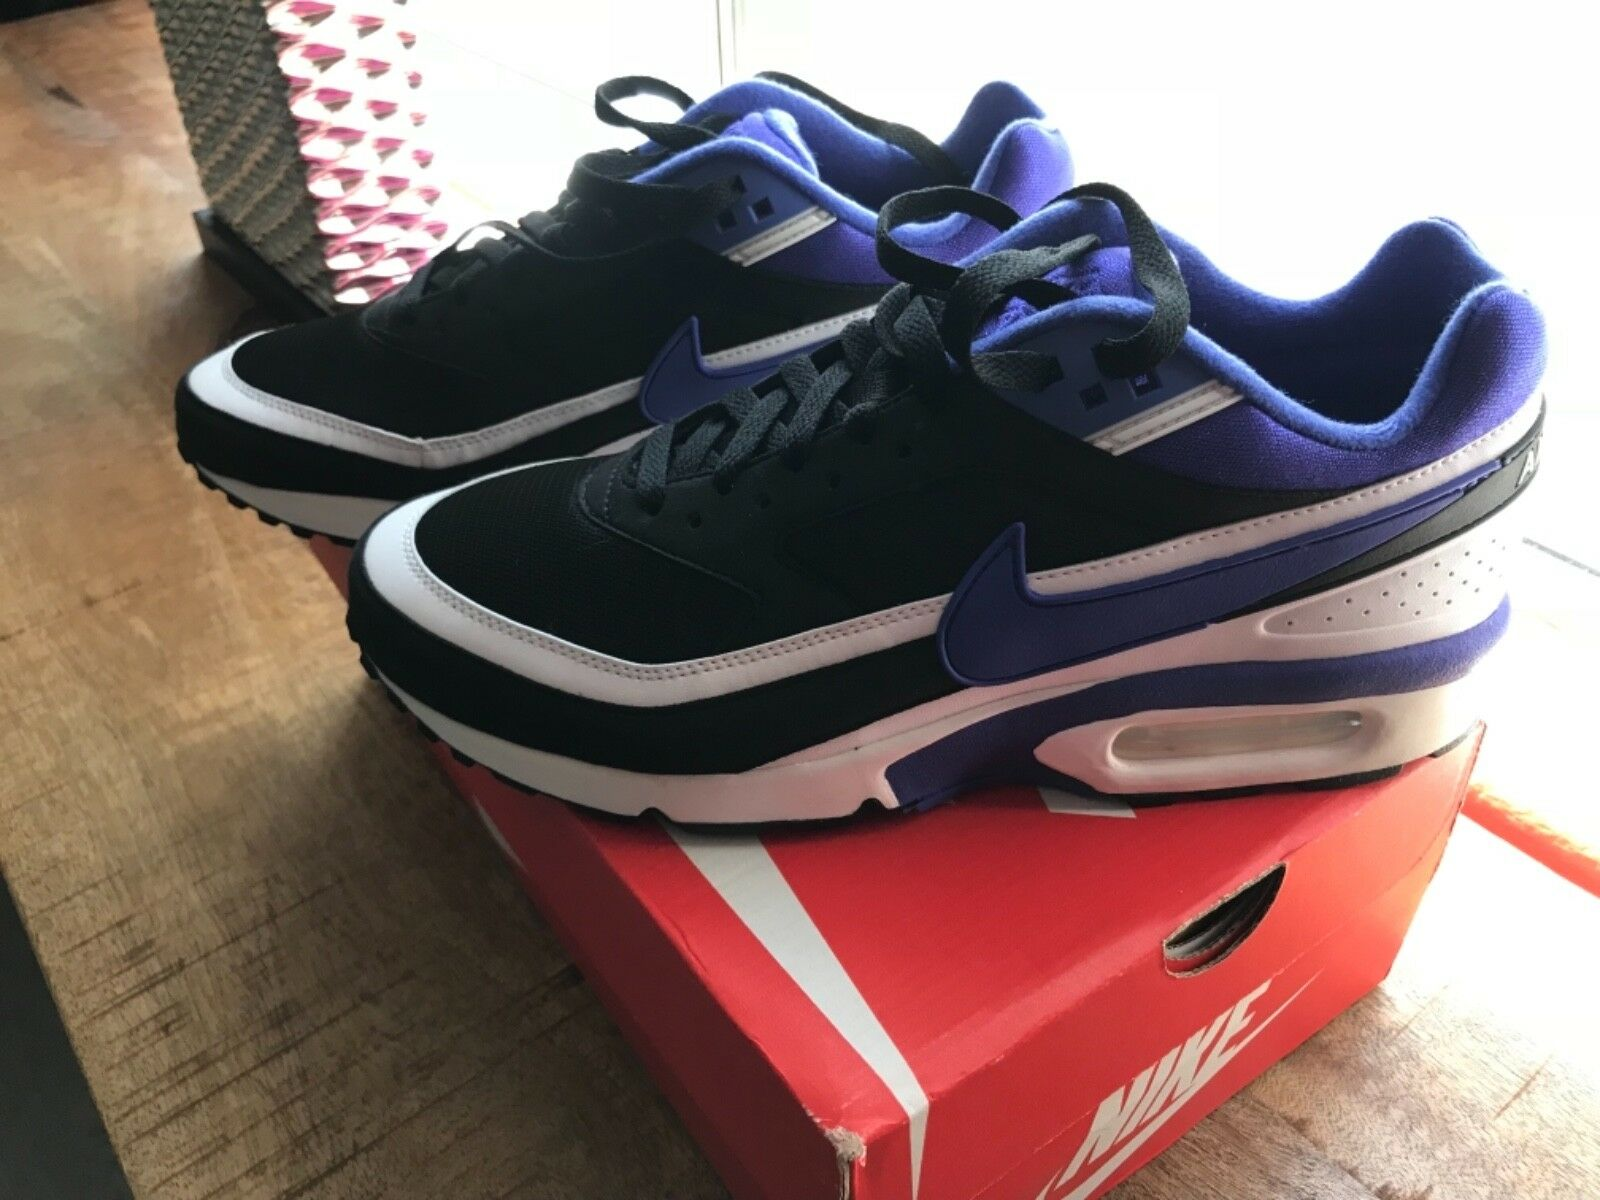 Nike - Airmax  - - - Men's Size 9.5 - New in Box  - Blue & White 799109